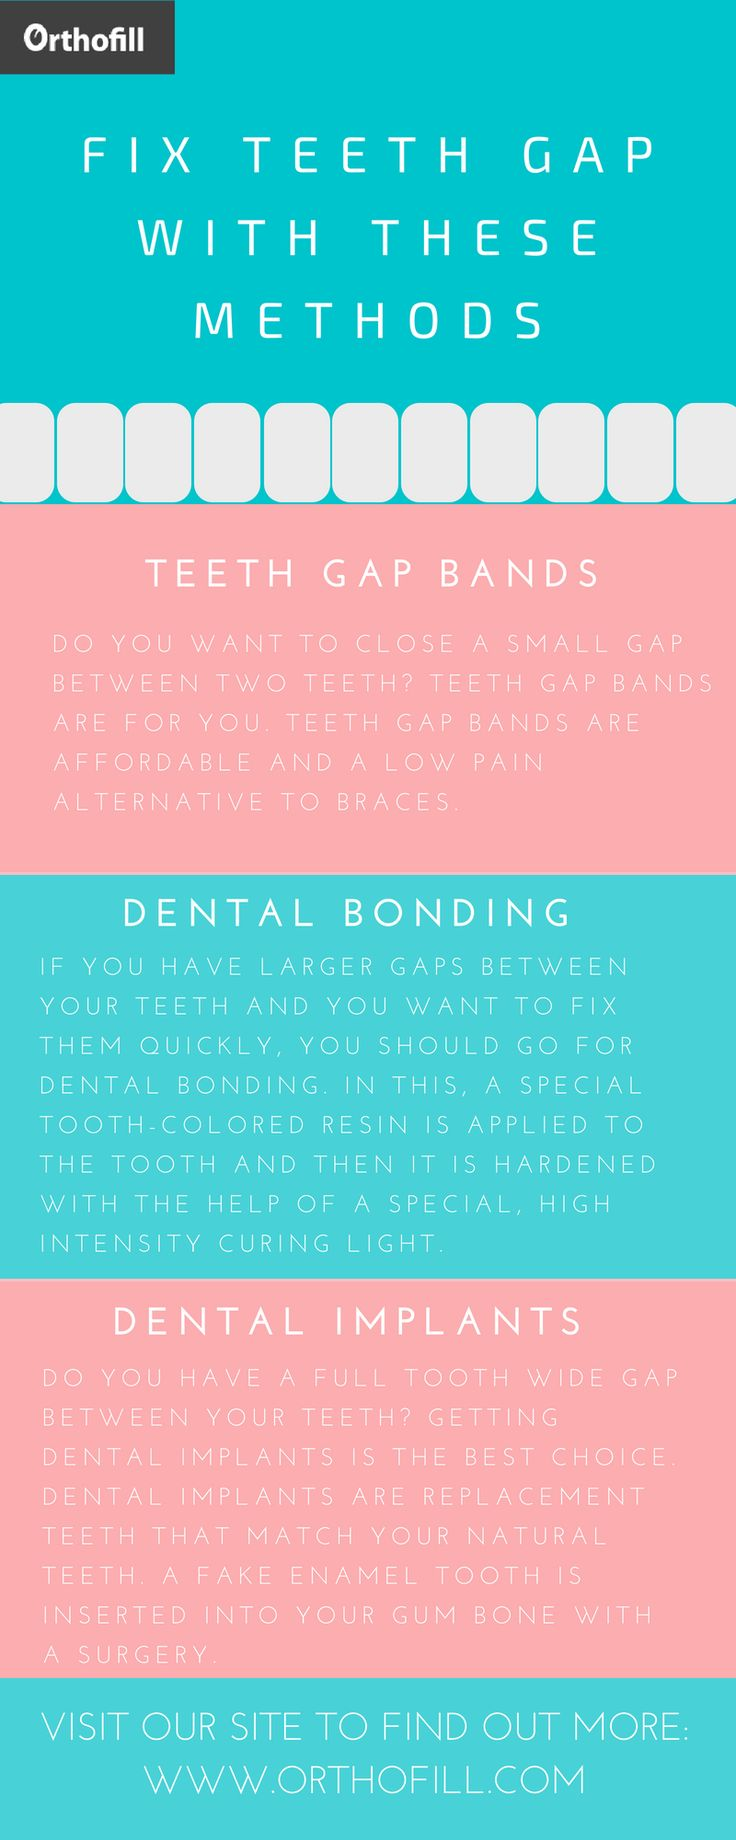 Do the gaps between your teeth make you feel less